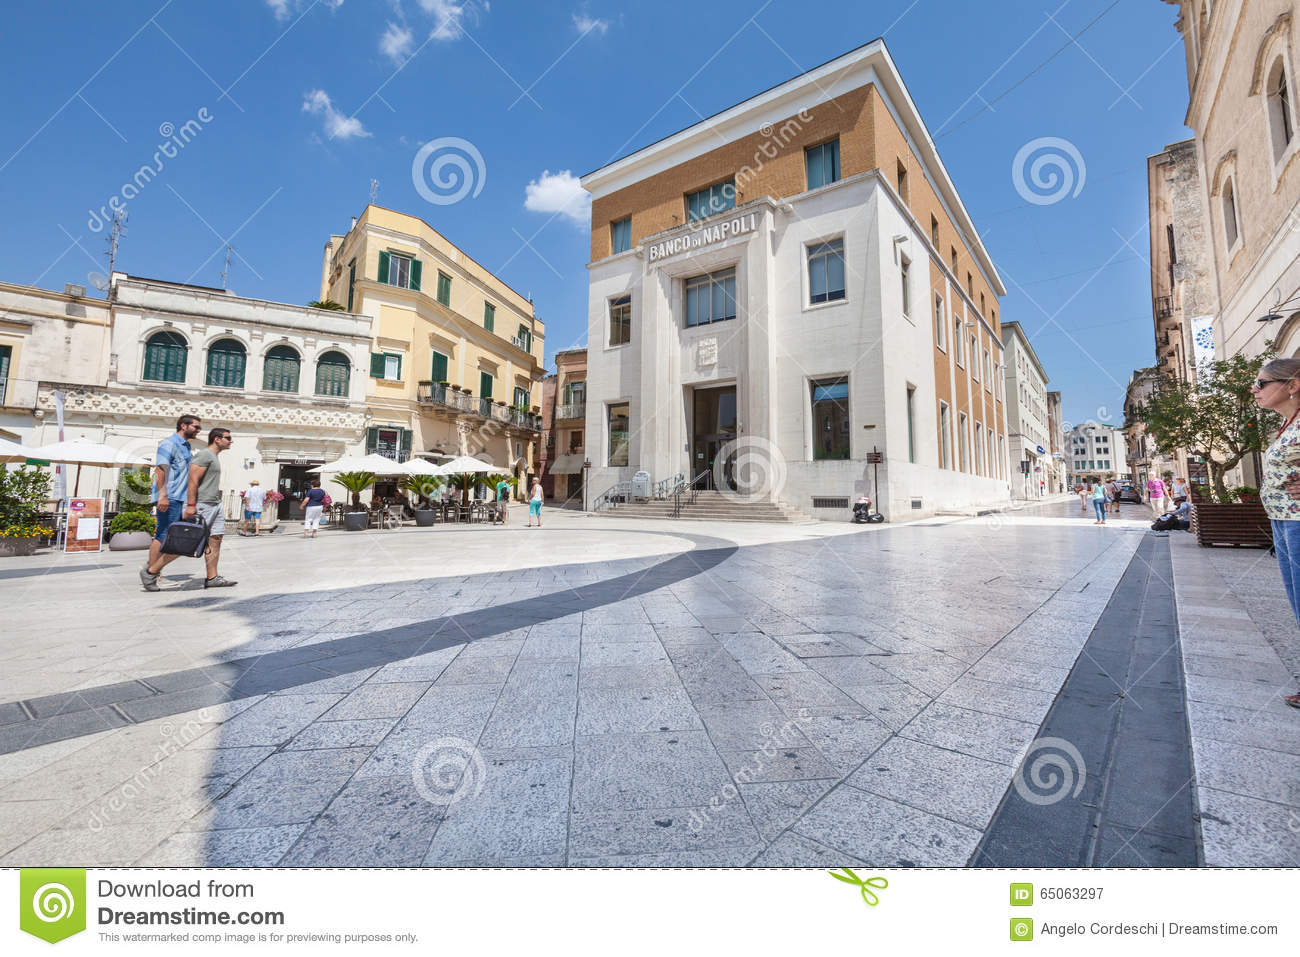 Italian square and architecture scene in matera citylife for Piazza vittorio veneto matera